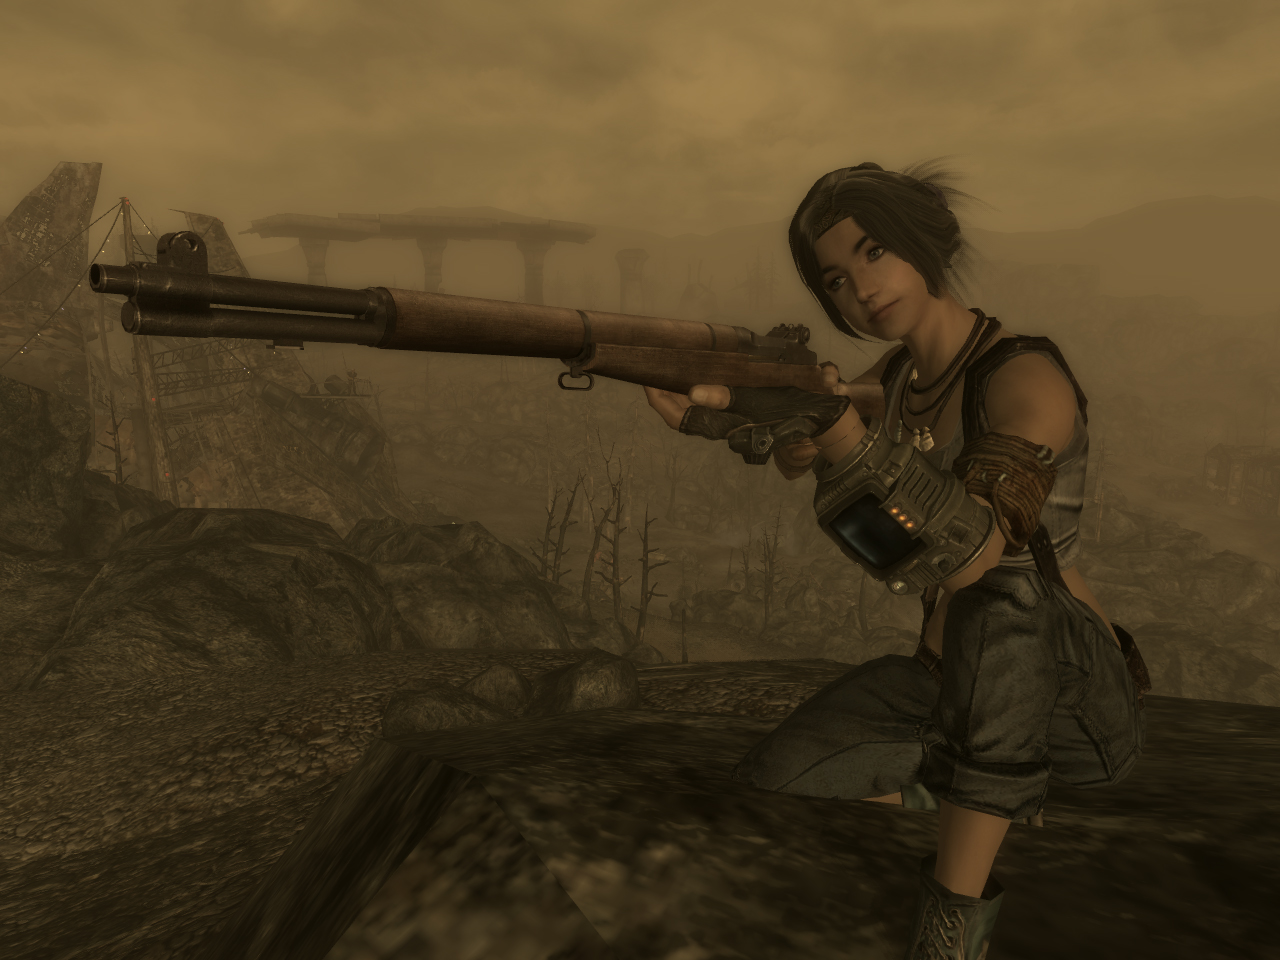 fallout 3 wanderers edition guide